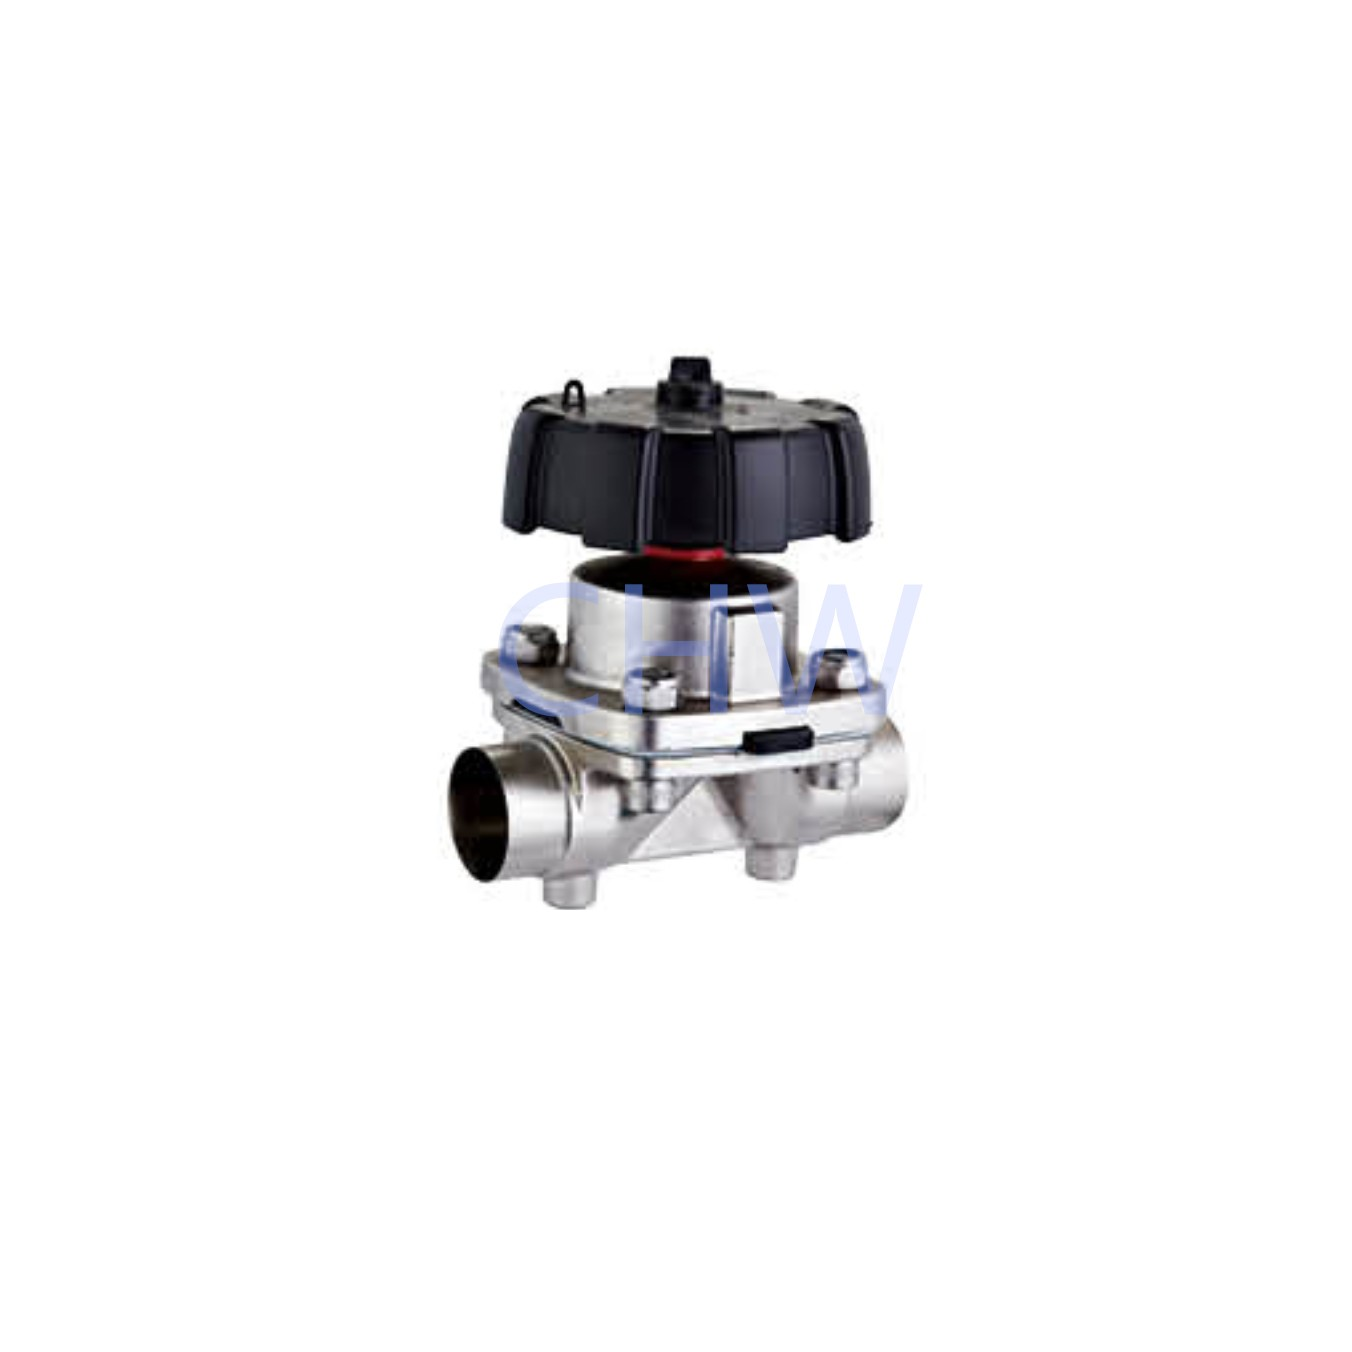 Sanitary stainless steel high quality Manual Welding Diaphragm Valve ss304 ss316L DIN SMS ISO 3A BPE IDF AS BS